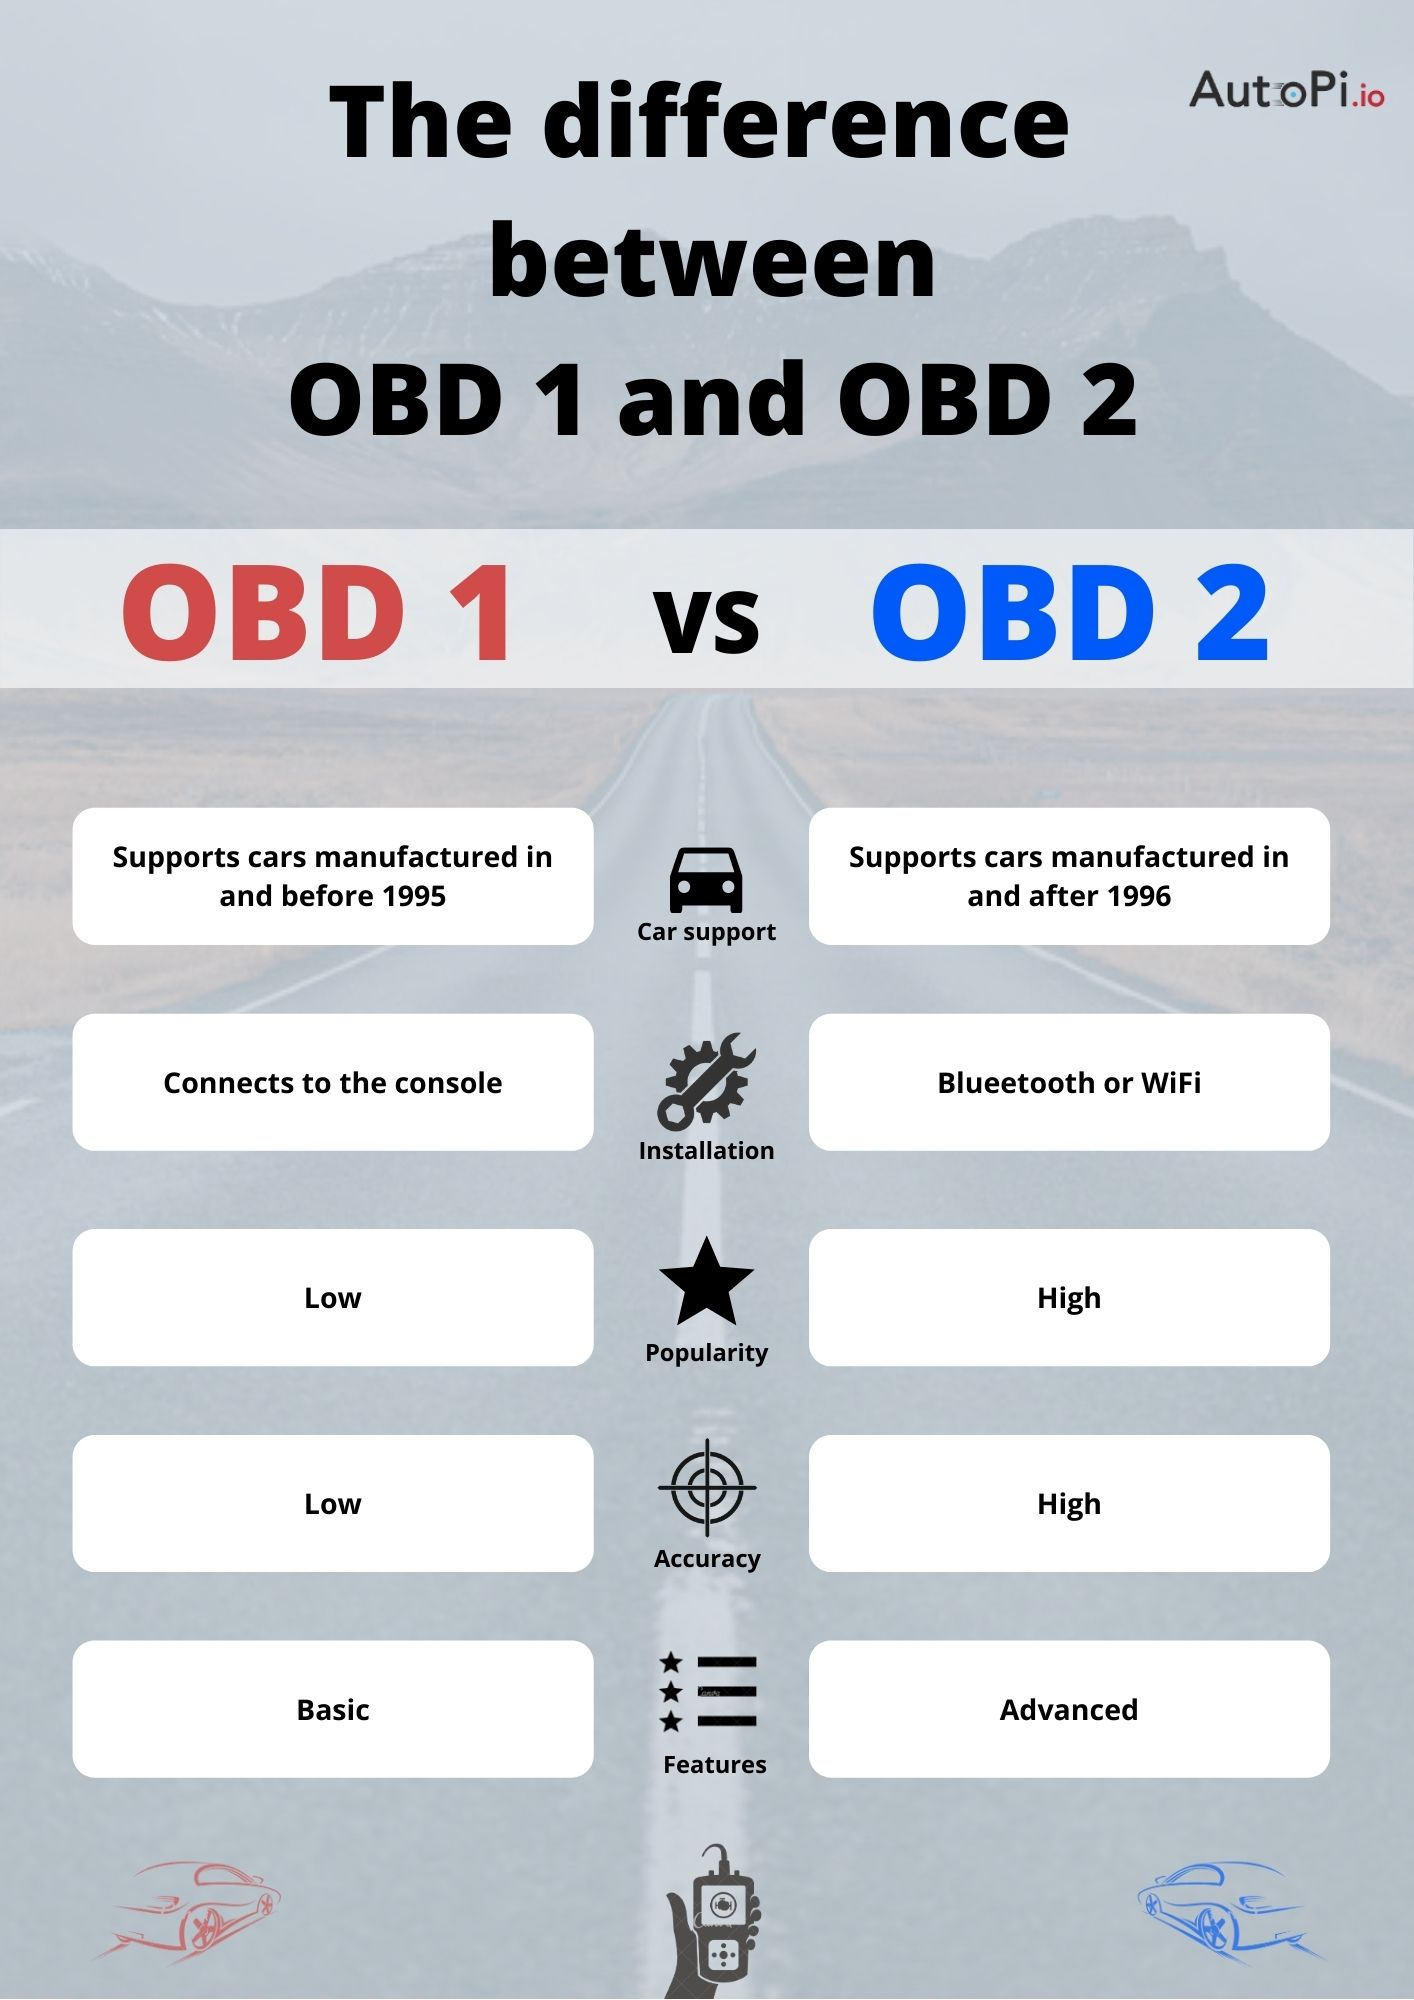 A chart describing differences between obd 1 and obd 2 in a graphical explanation